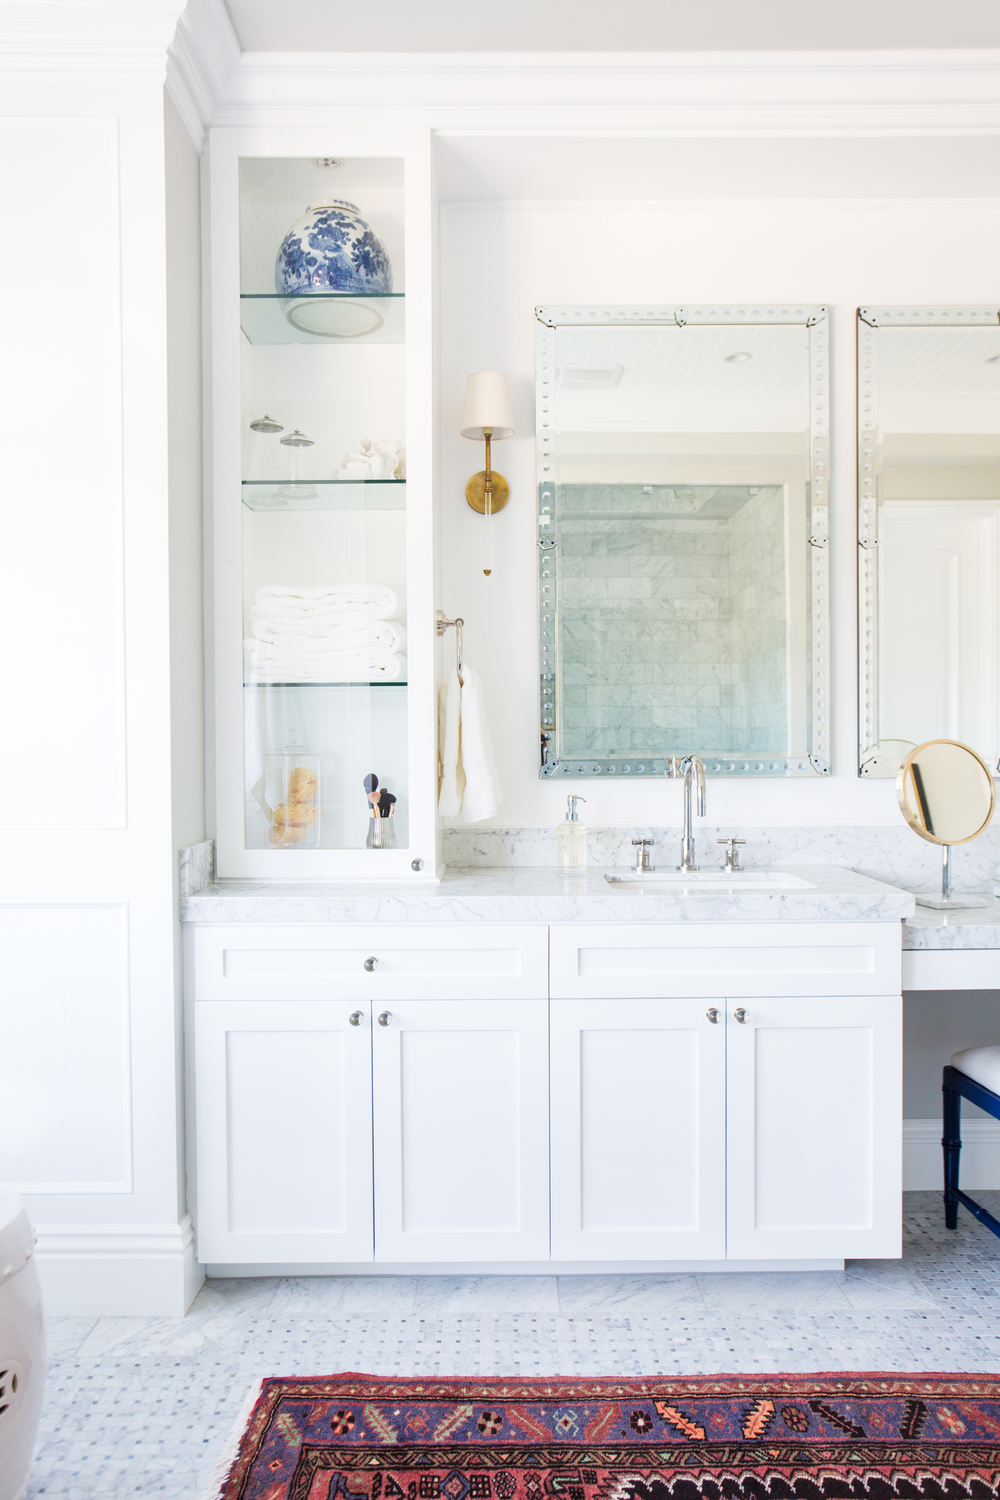 Studio McGee - Pacific Palisades Master Bathroom